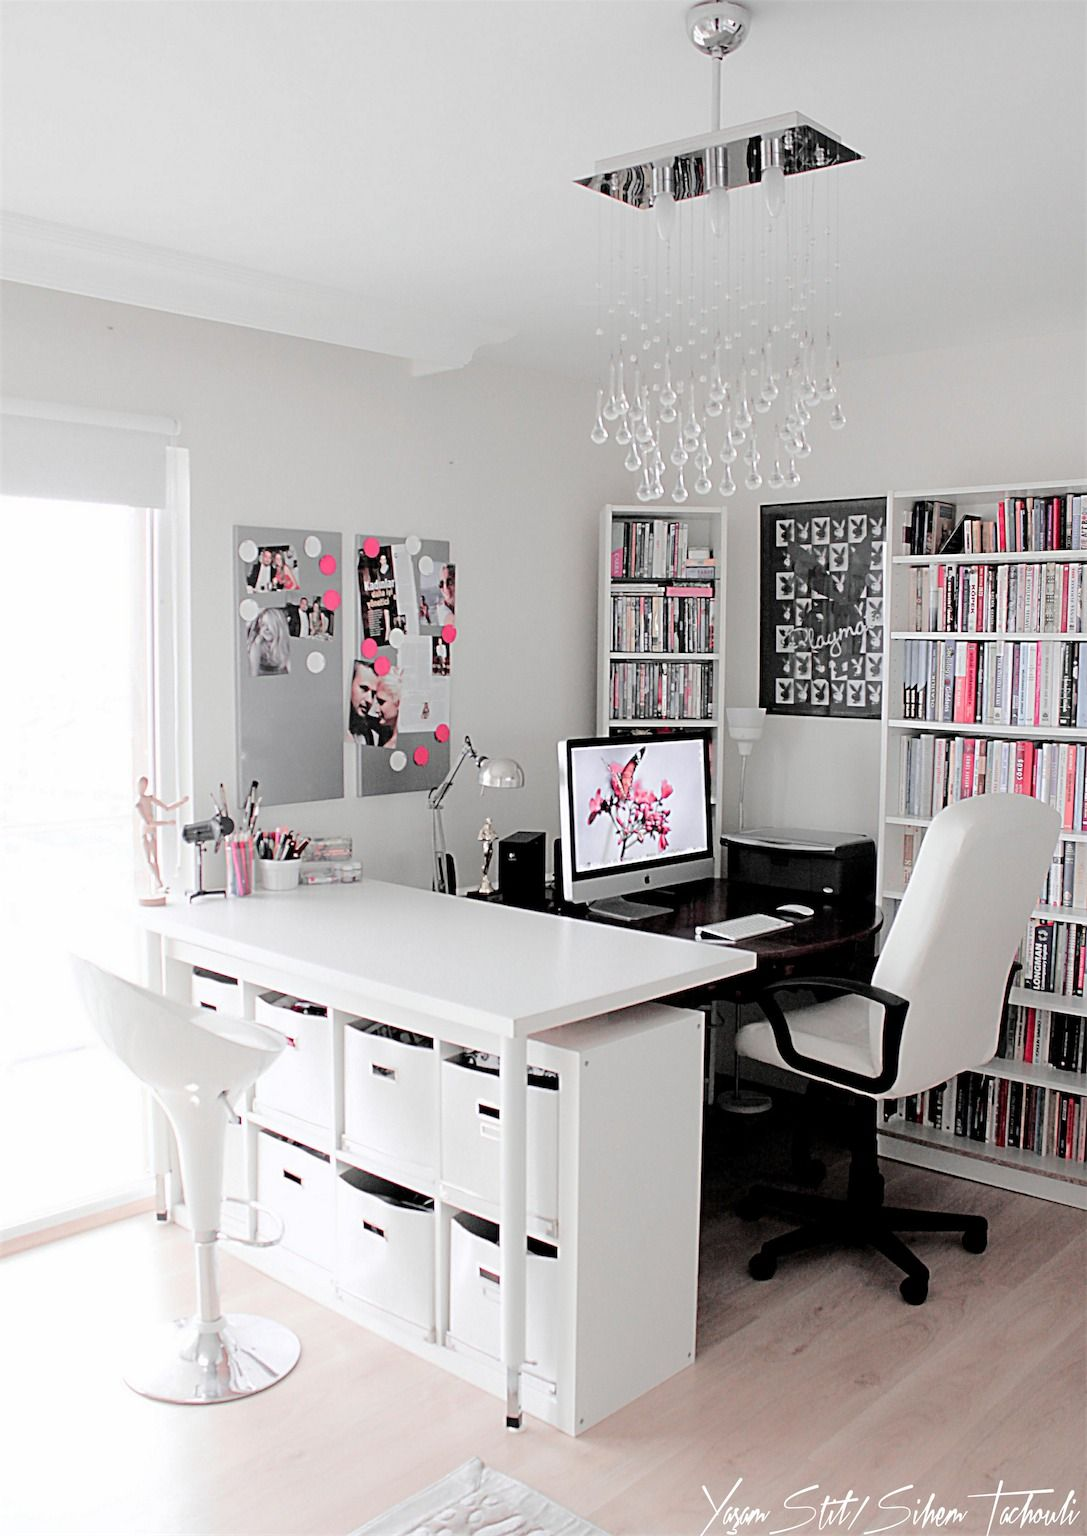 Things I Heart: Home Offices | Desk space, Small office spaces and ...